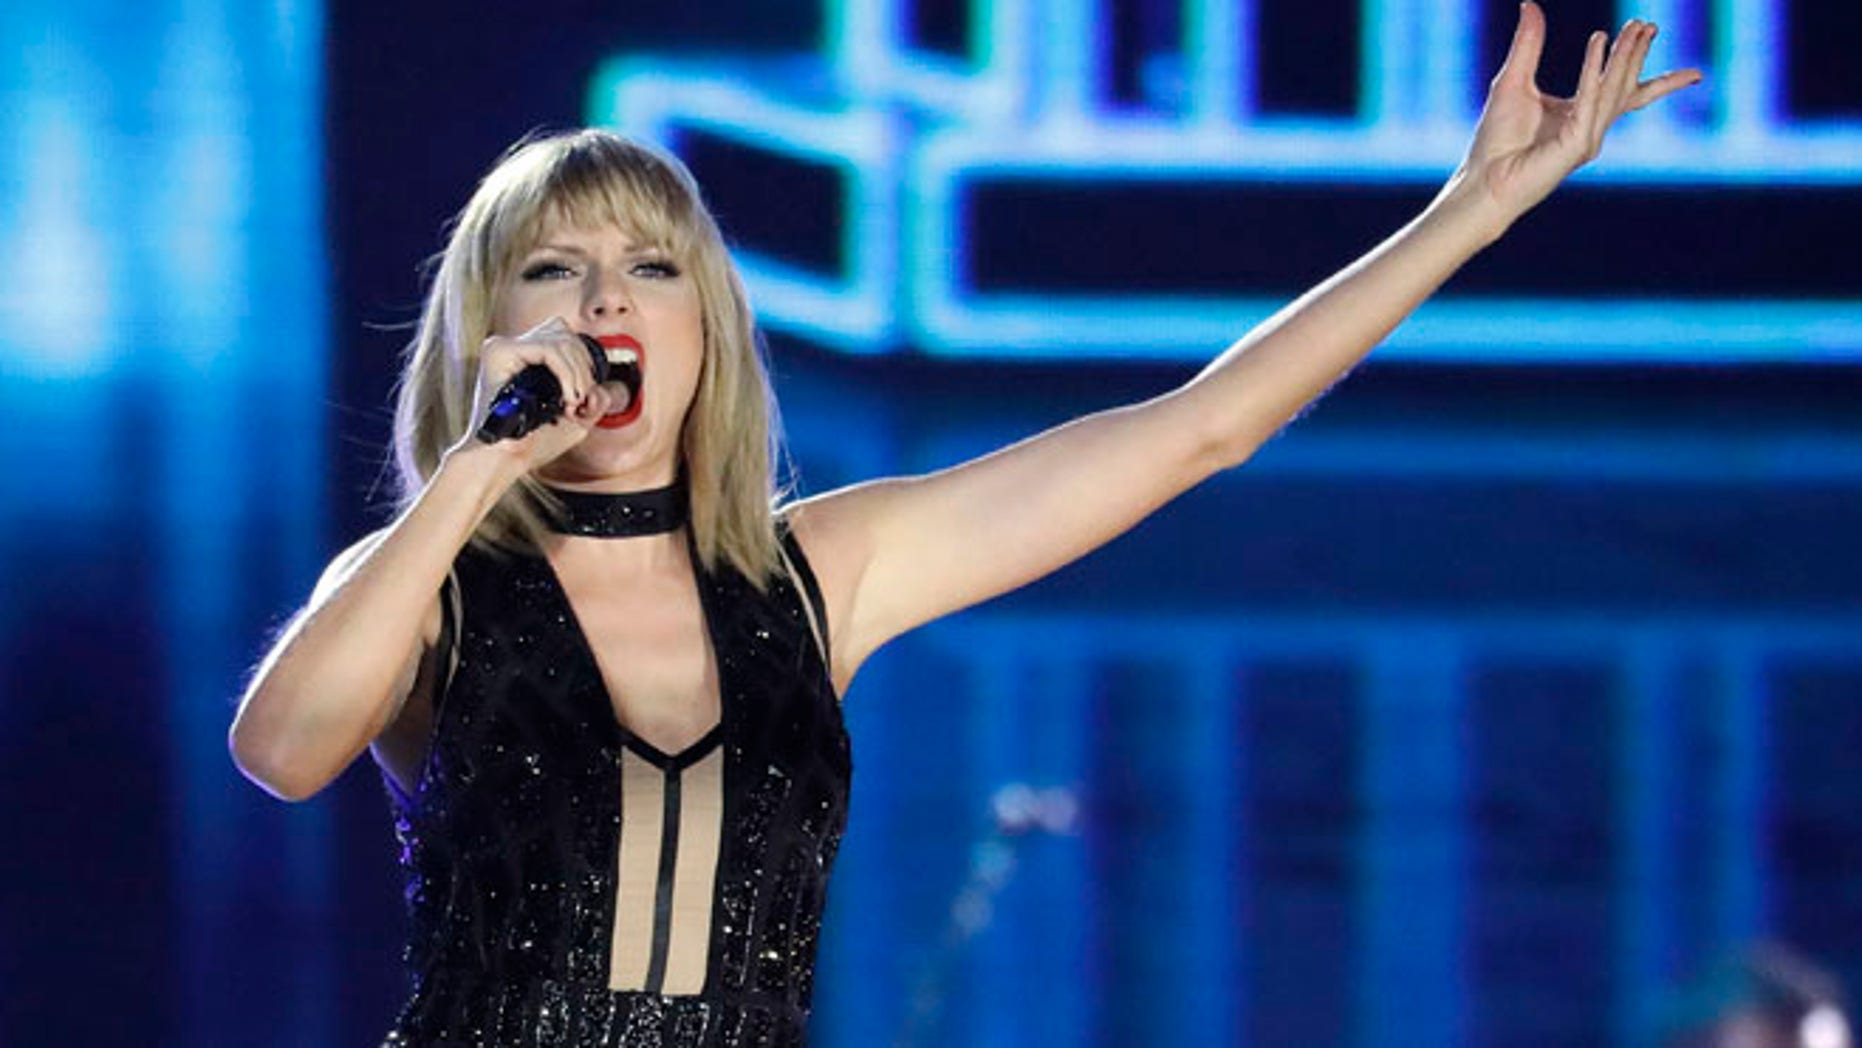 Taylor Swift performs on the eve of the Formula One U.S. Grand Prix race in Austin, Texas.